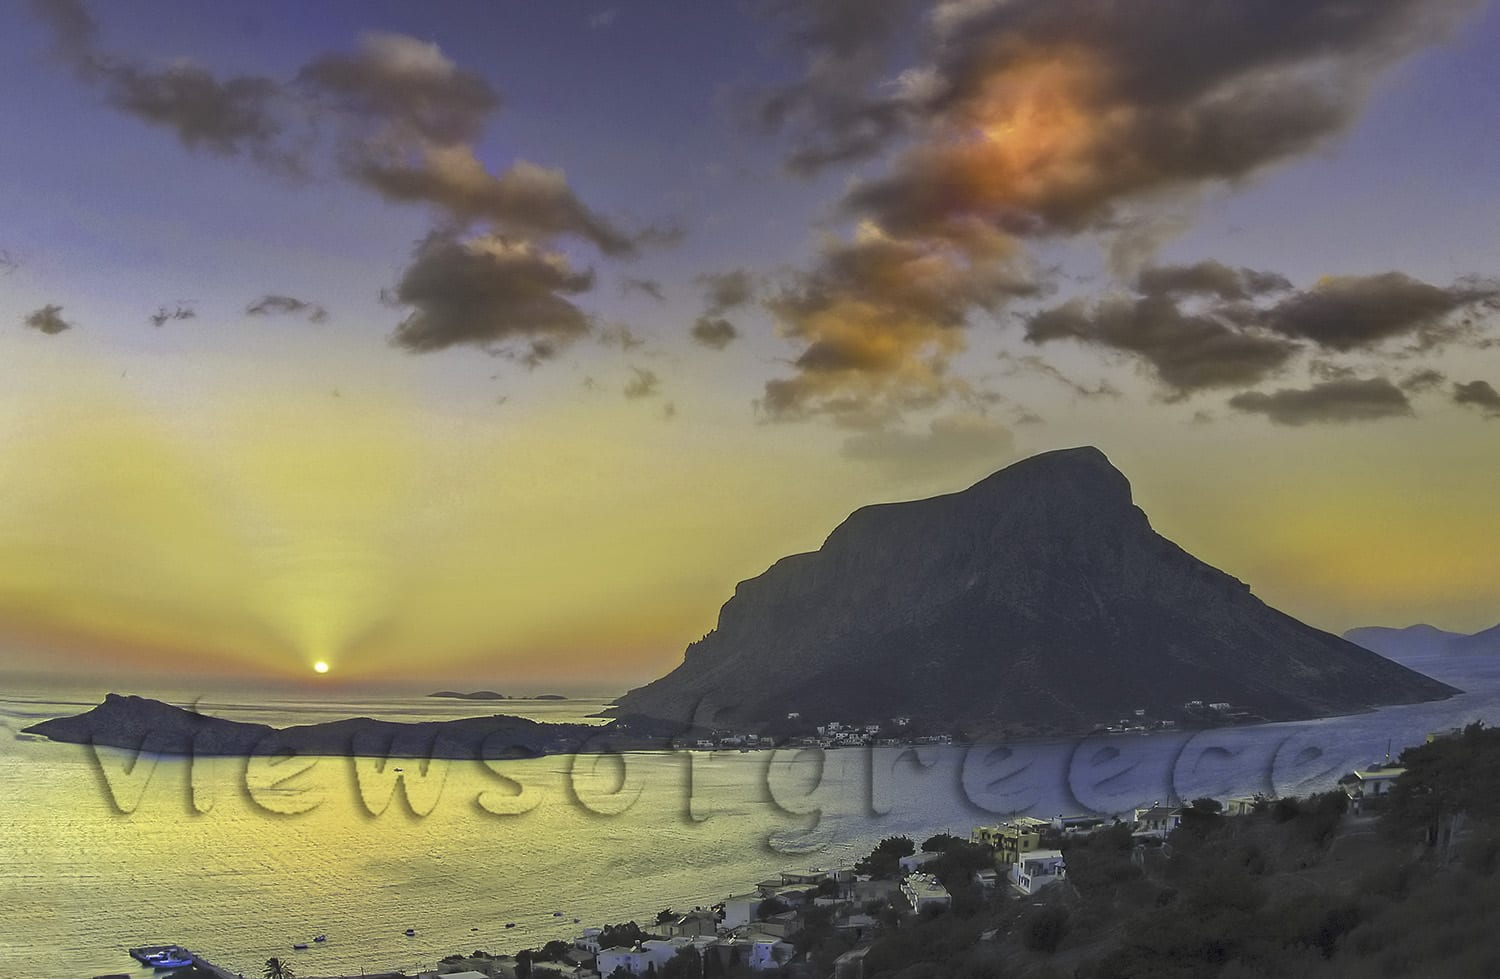 kalymnos, telendos, island, landscape, travel, outdoor, tourism, summer, greece, climbing, scenic, natural, rock climbing, destination, beach, sunset, Τέλενδος, παραλίες, Δωδεκάνησα